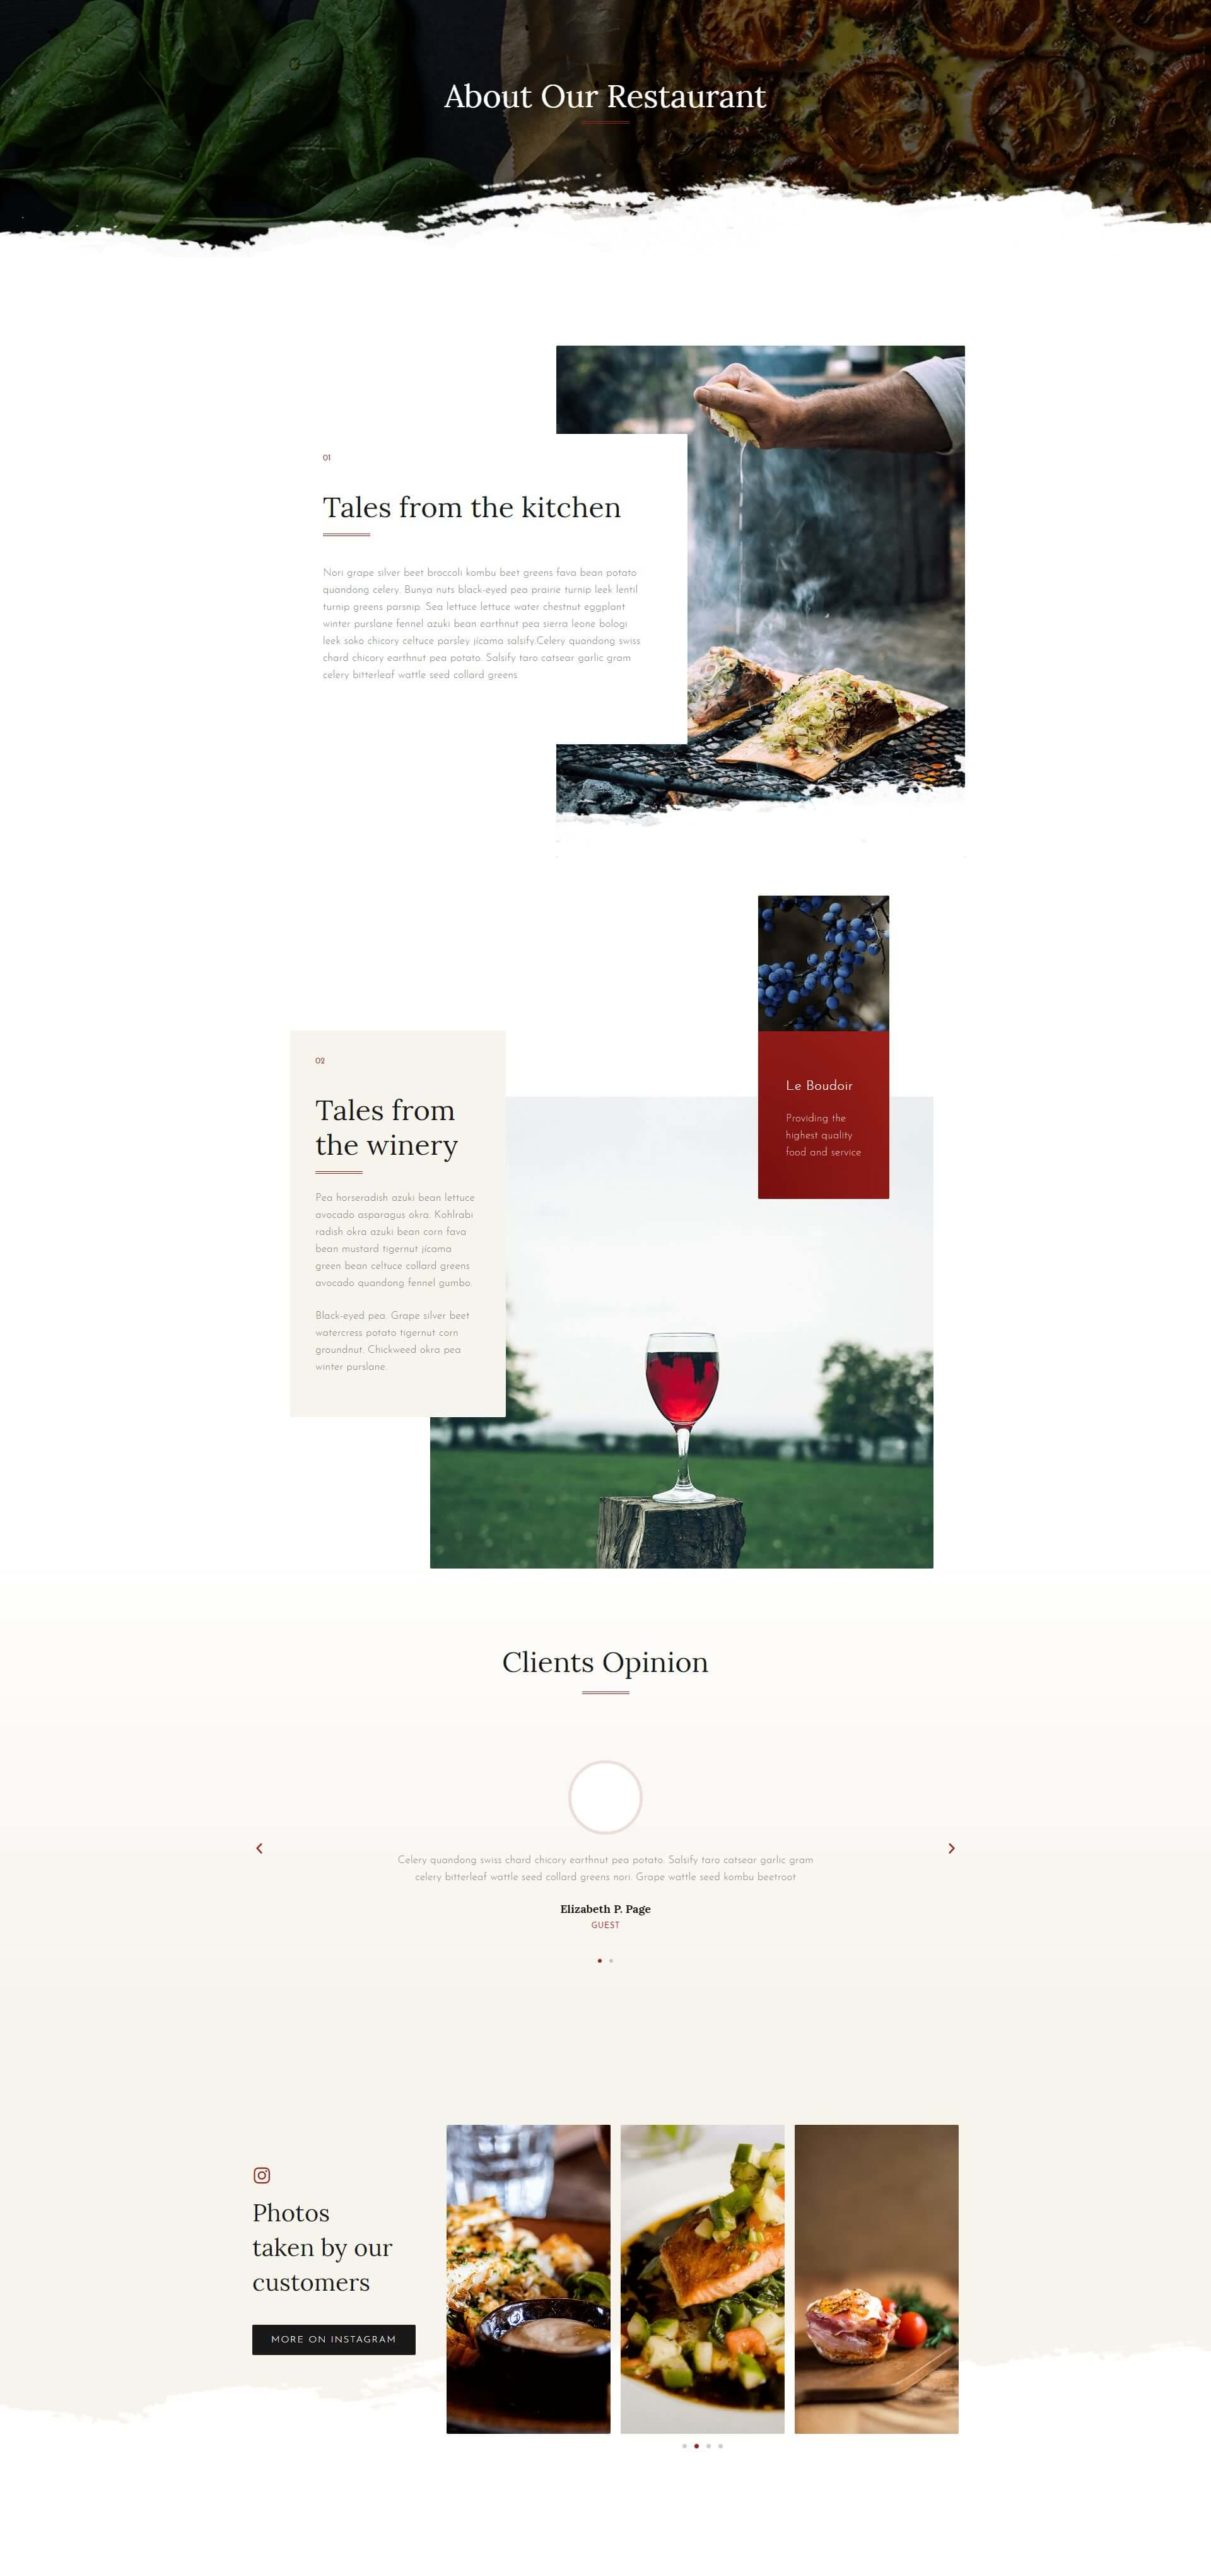 Restaurant Site – About